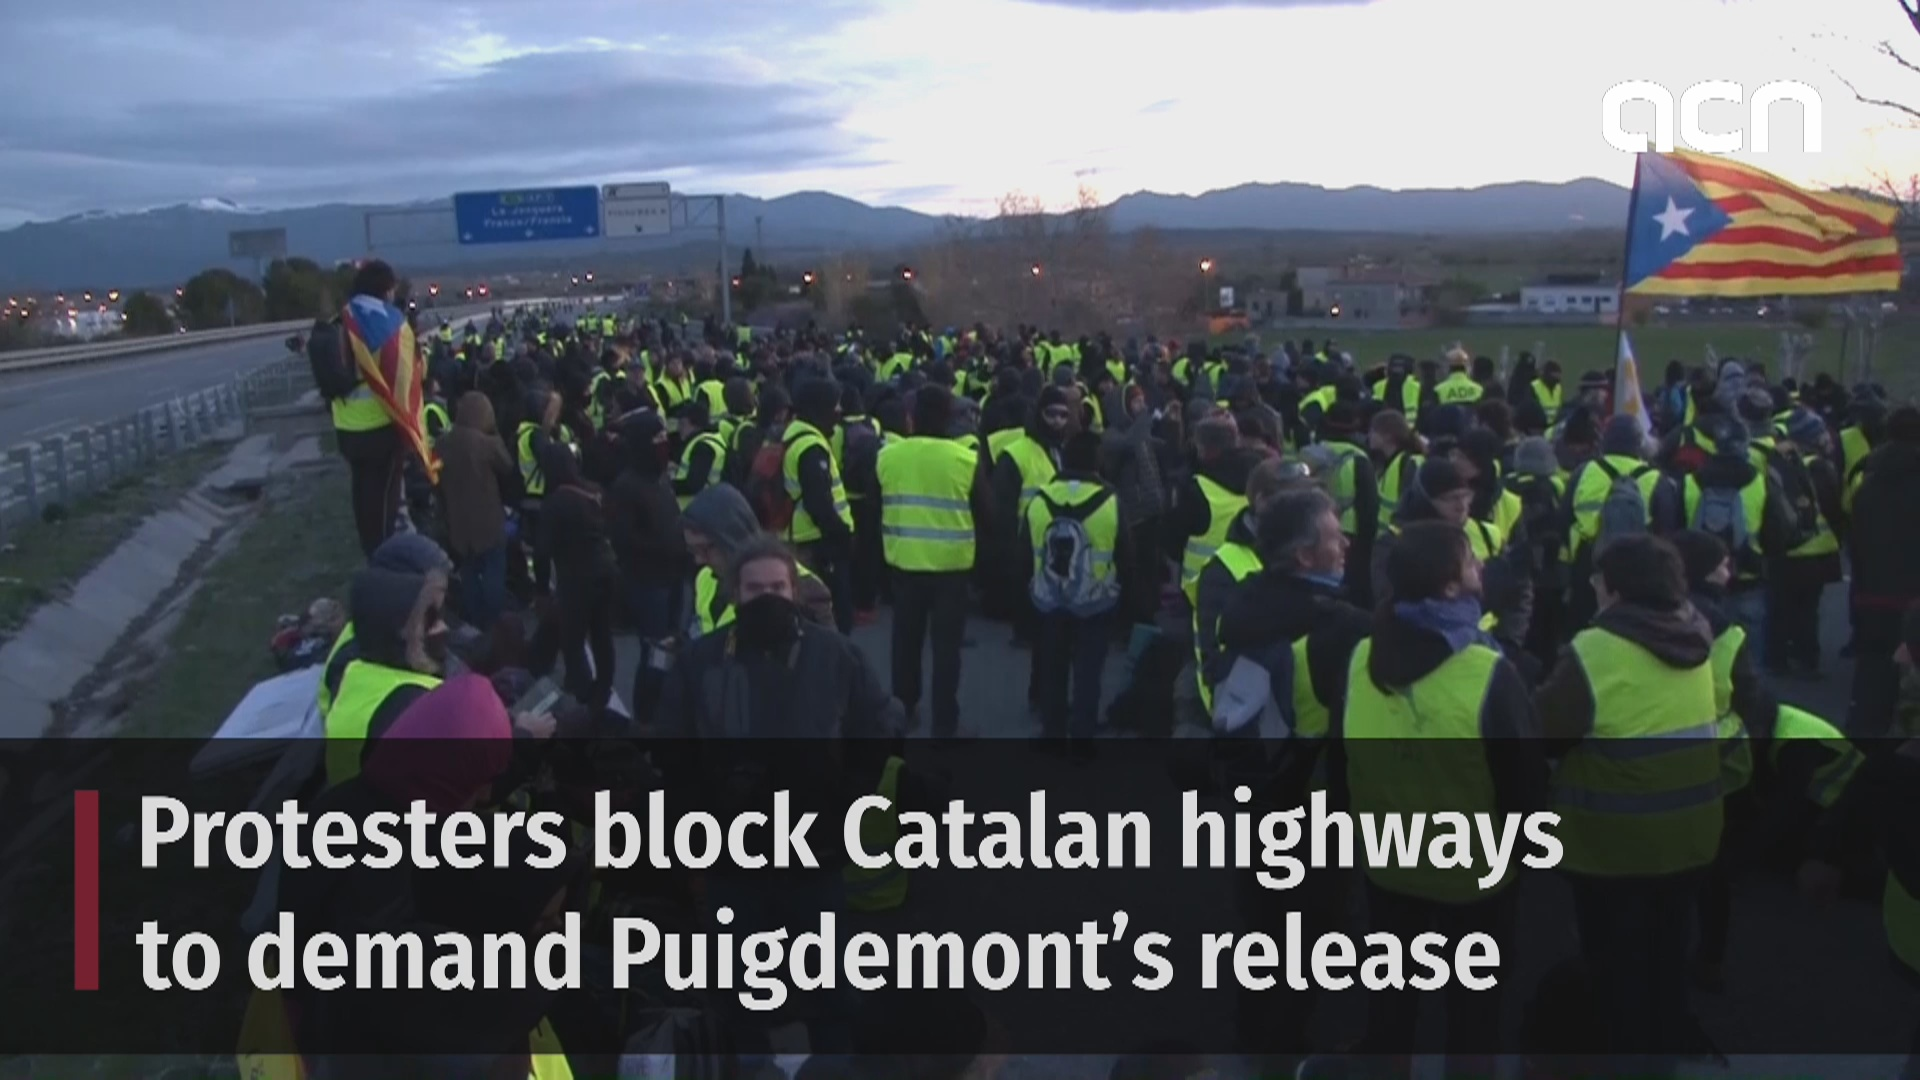 Protesters block Catalan highways to demand Puigdemont's release